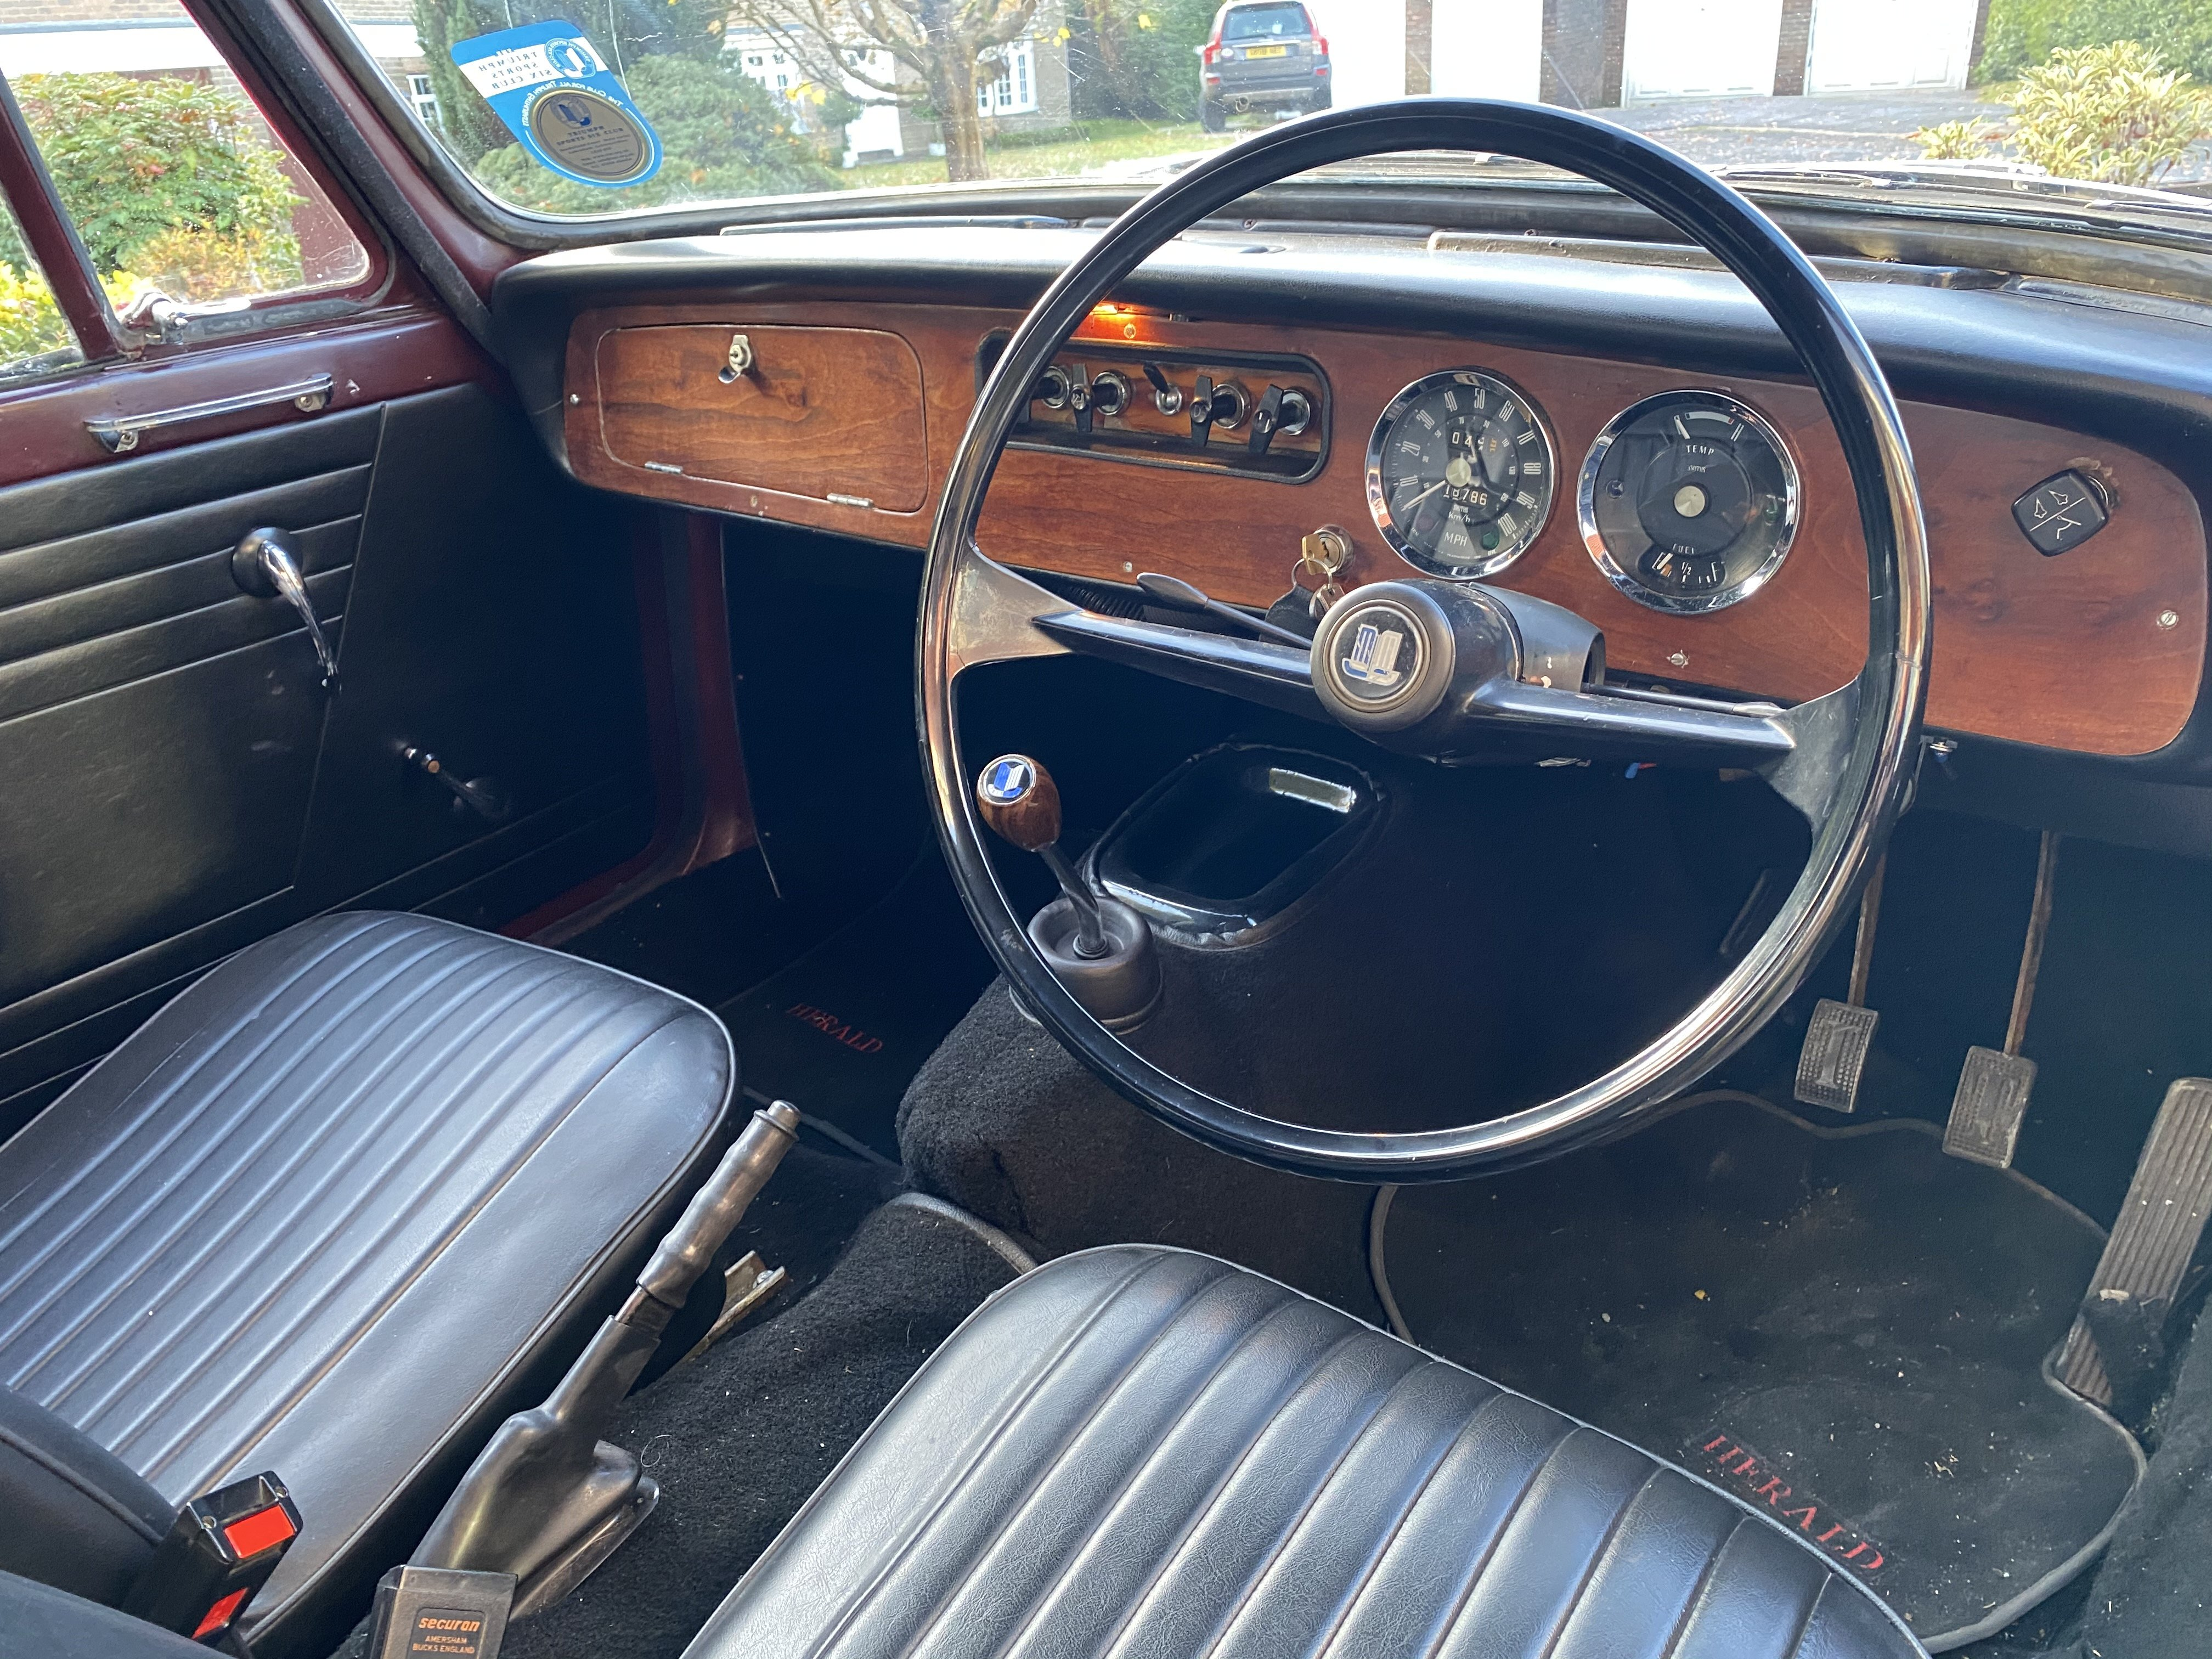 1969 Triumph Herald 13/60 Convertible For Sale (picture 5 of 6)